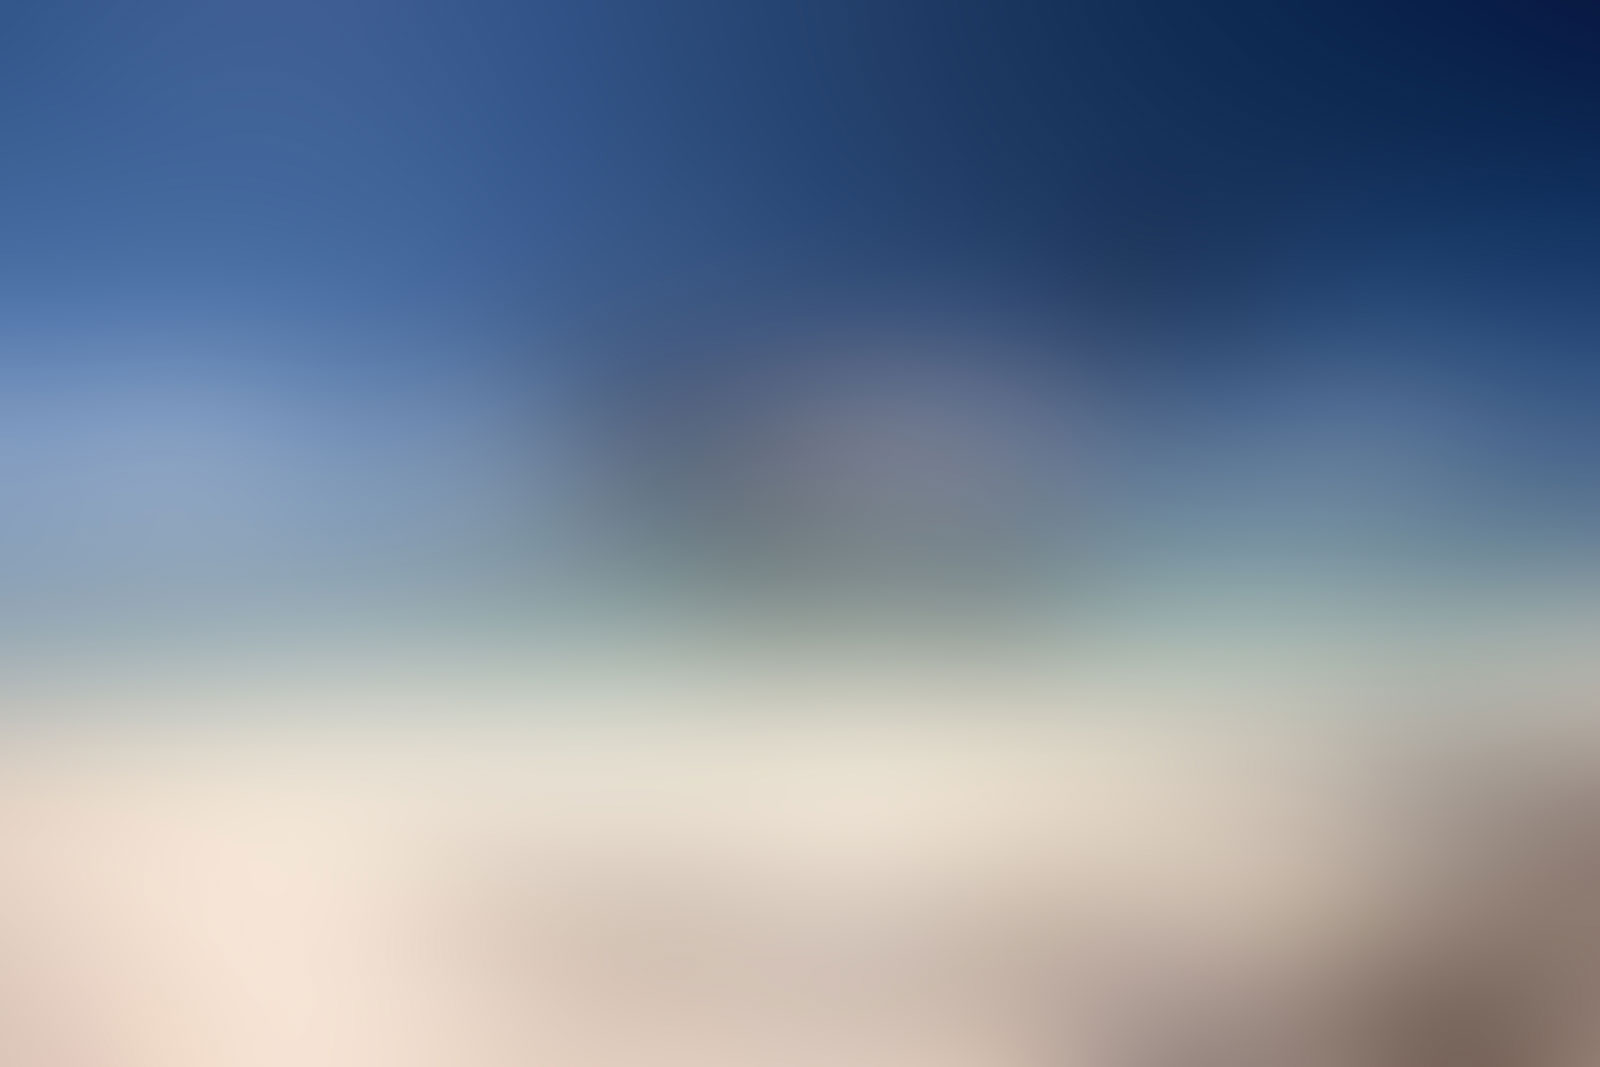 Blurred Background Blue Tan